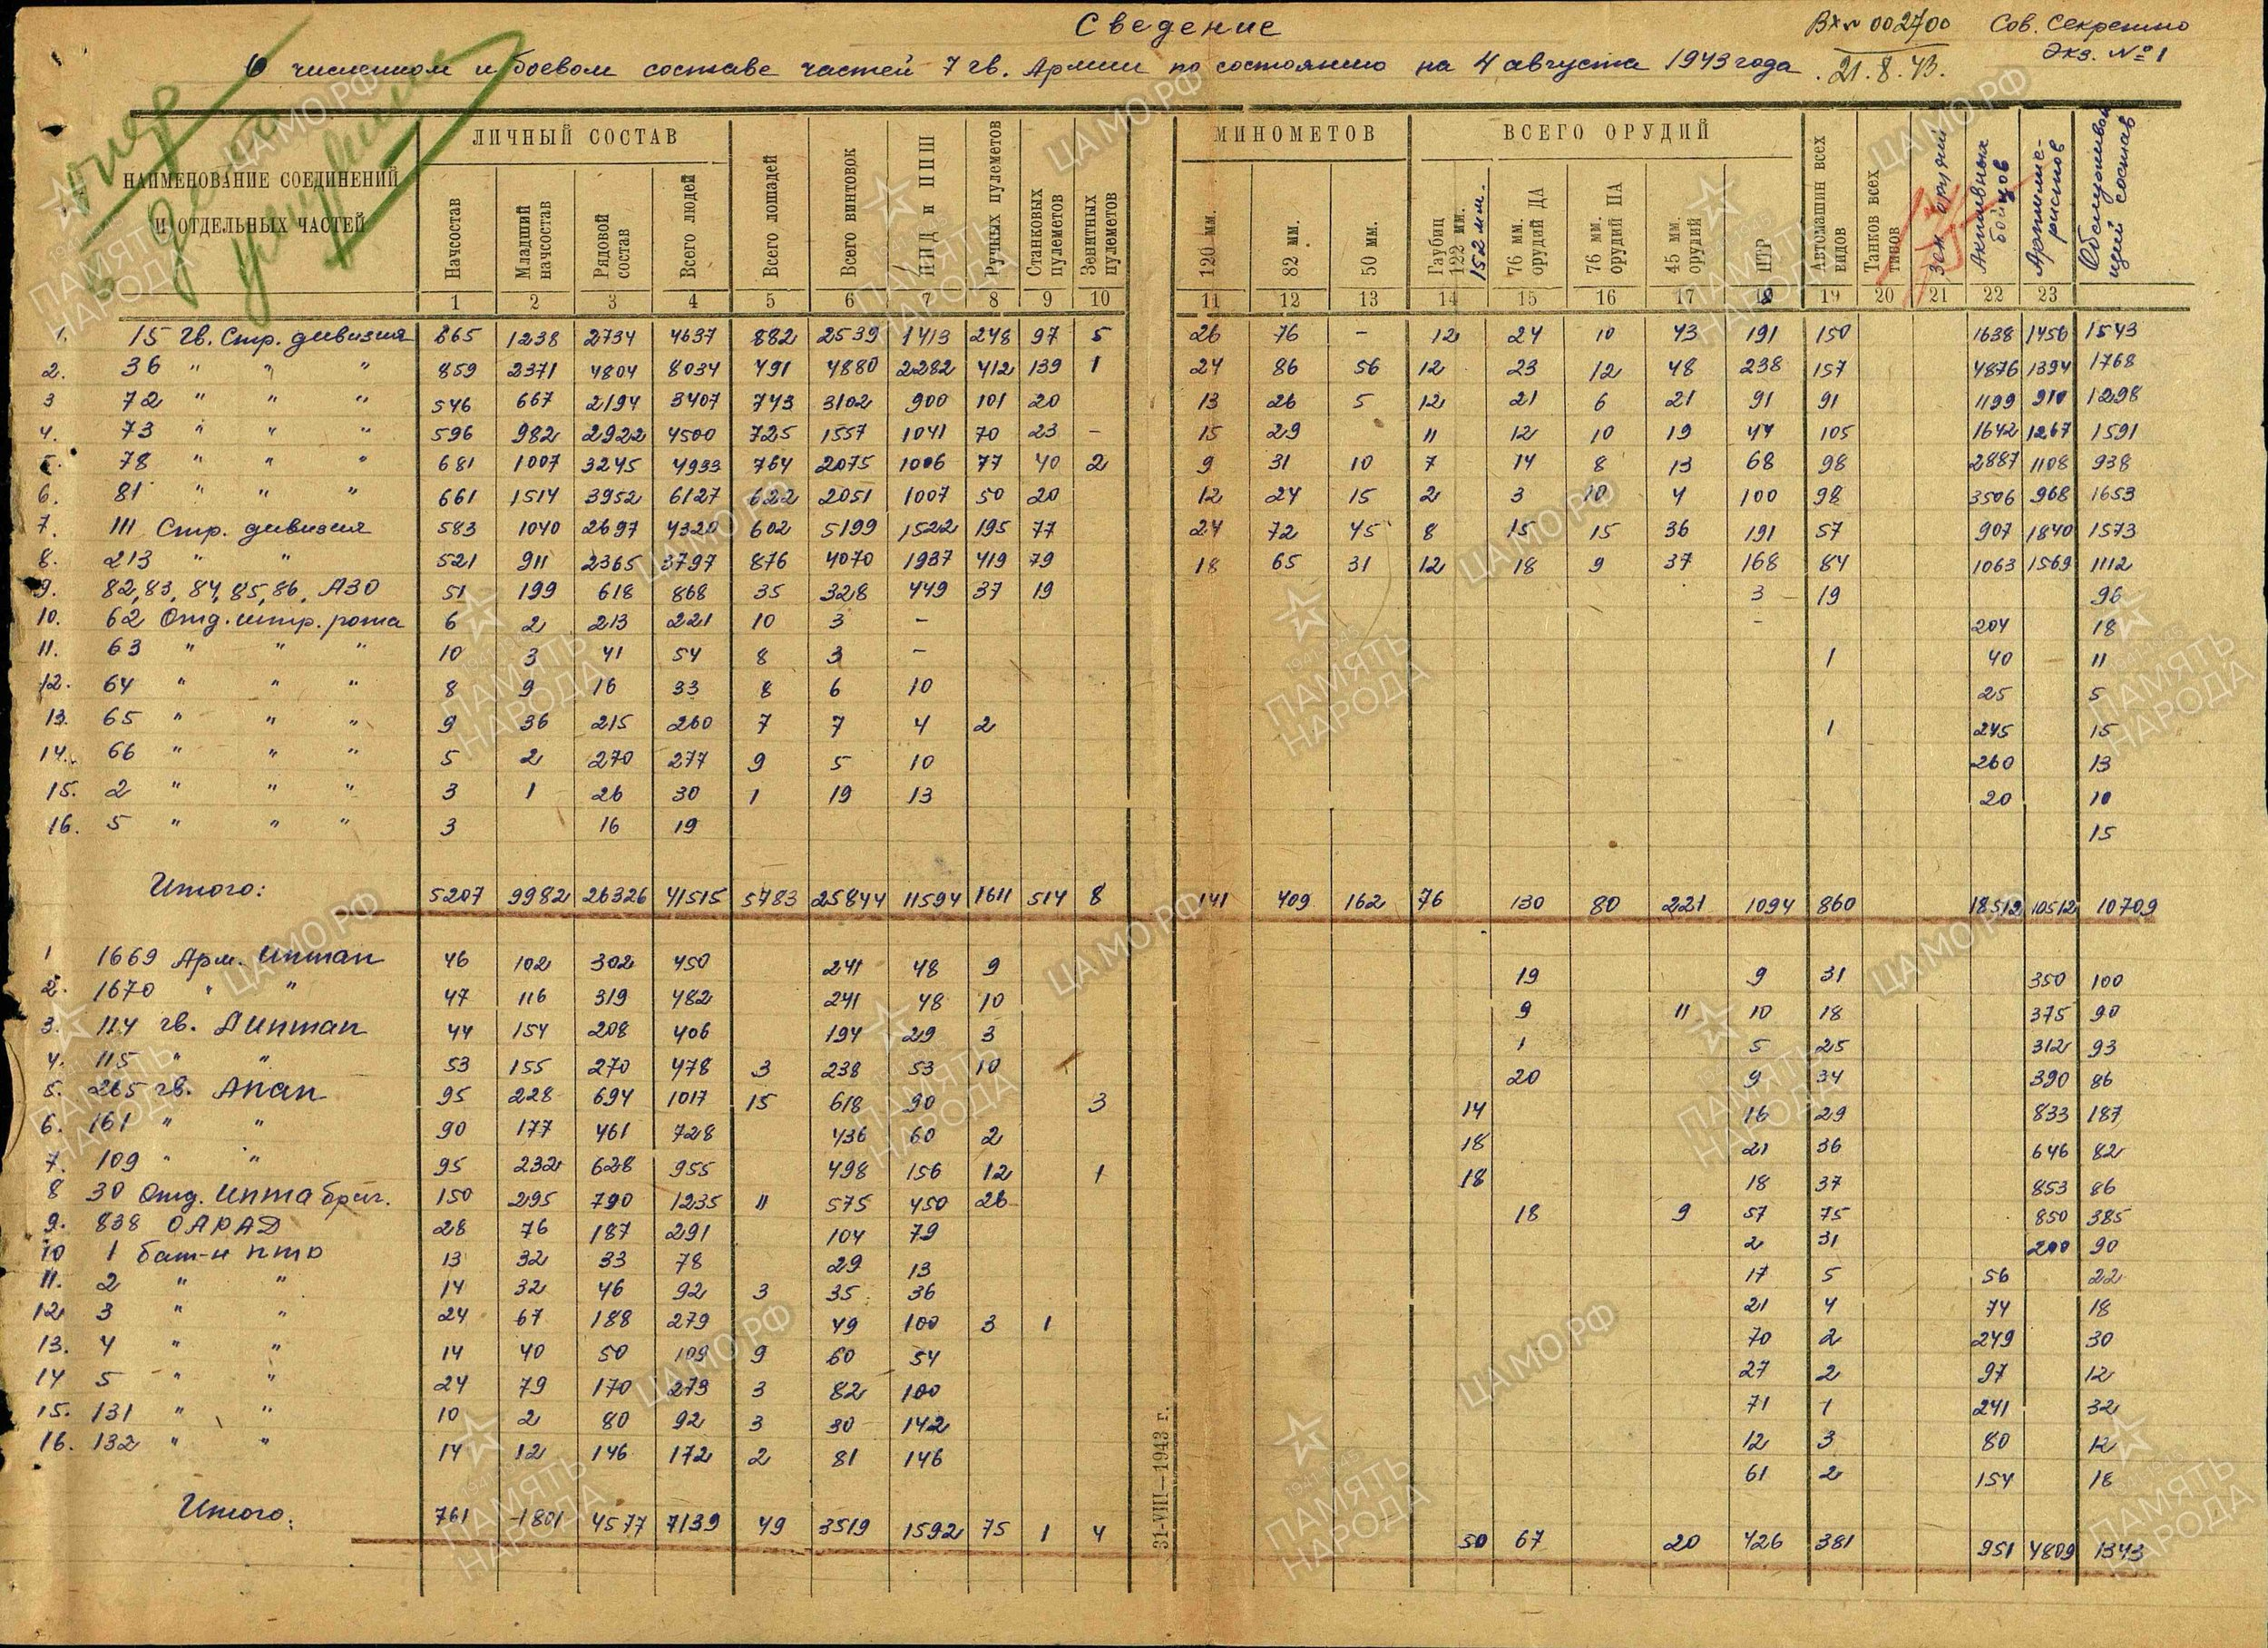 7 Guards Army statistics in August 1943